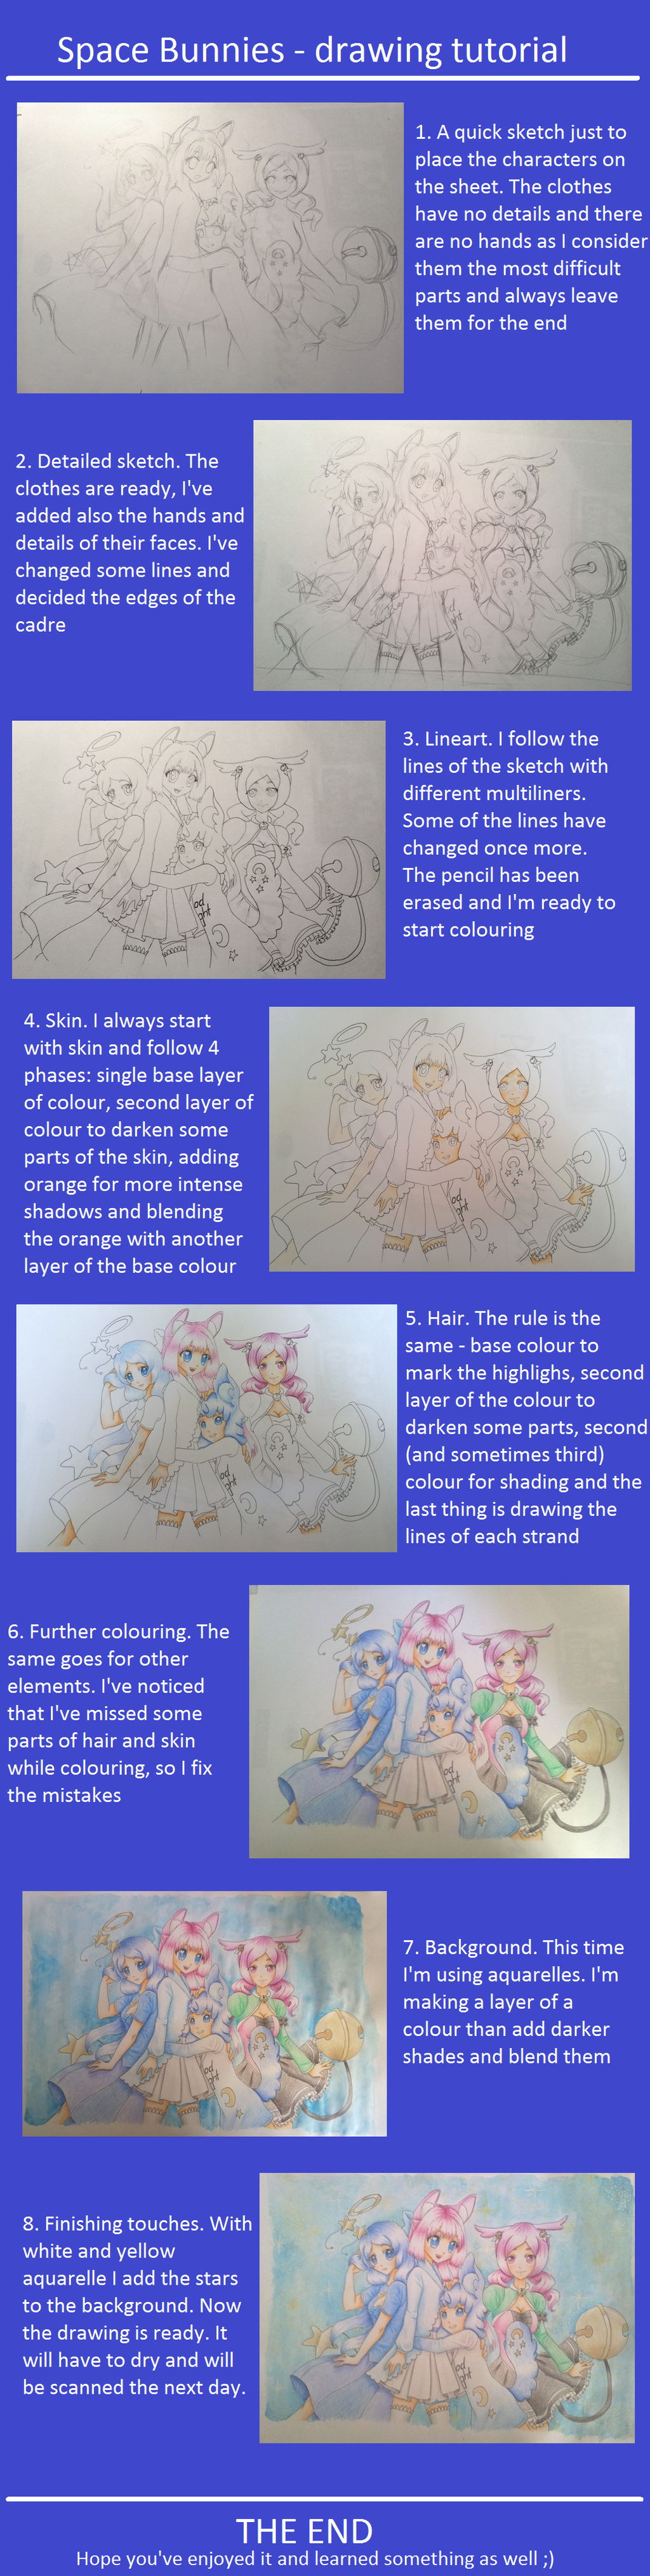 Space bunnies drawing tutorial by draconine on deviantart for Space art tutorial